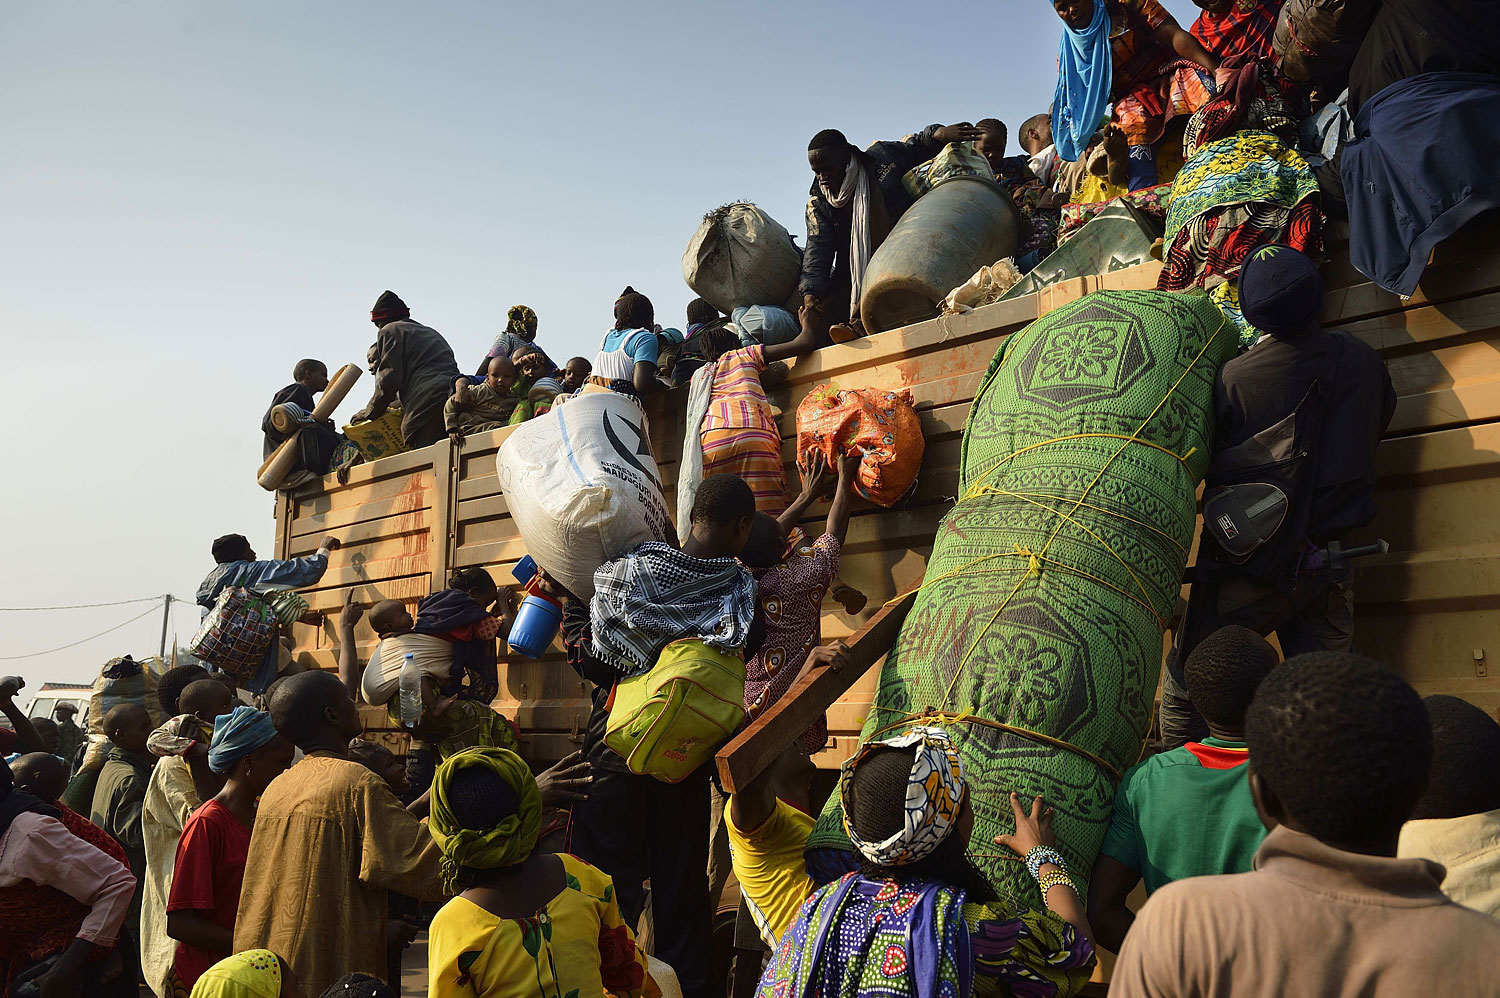 Chadian civilians climb on a military chadian truck to go back to Chad on Jan. 15, 2014, in the PK12 district of Bangui.